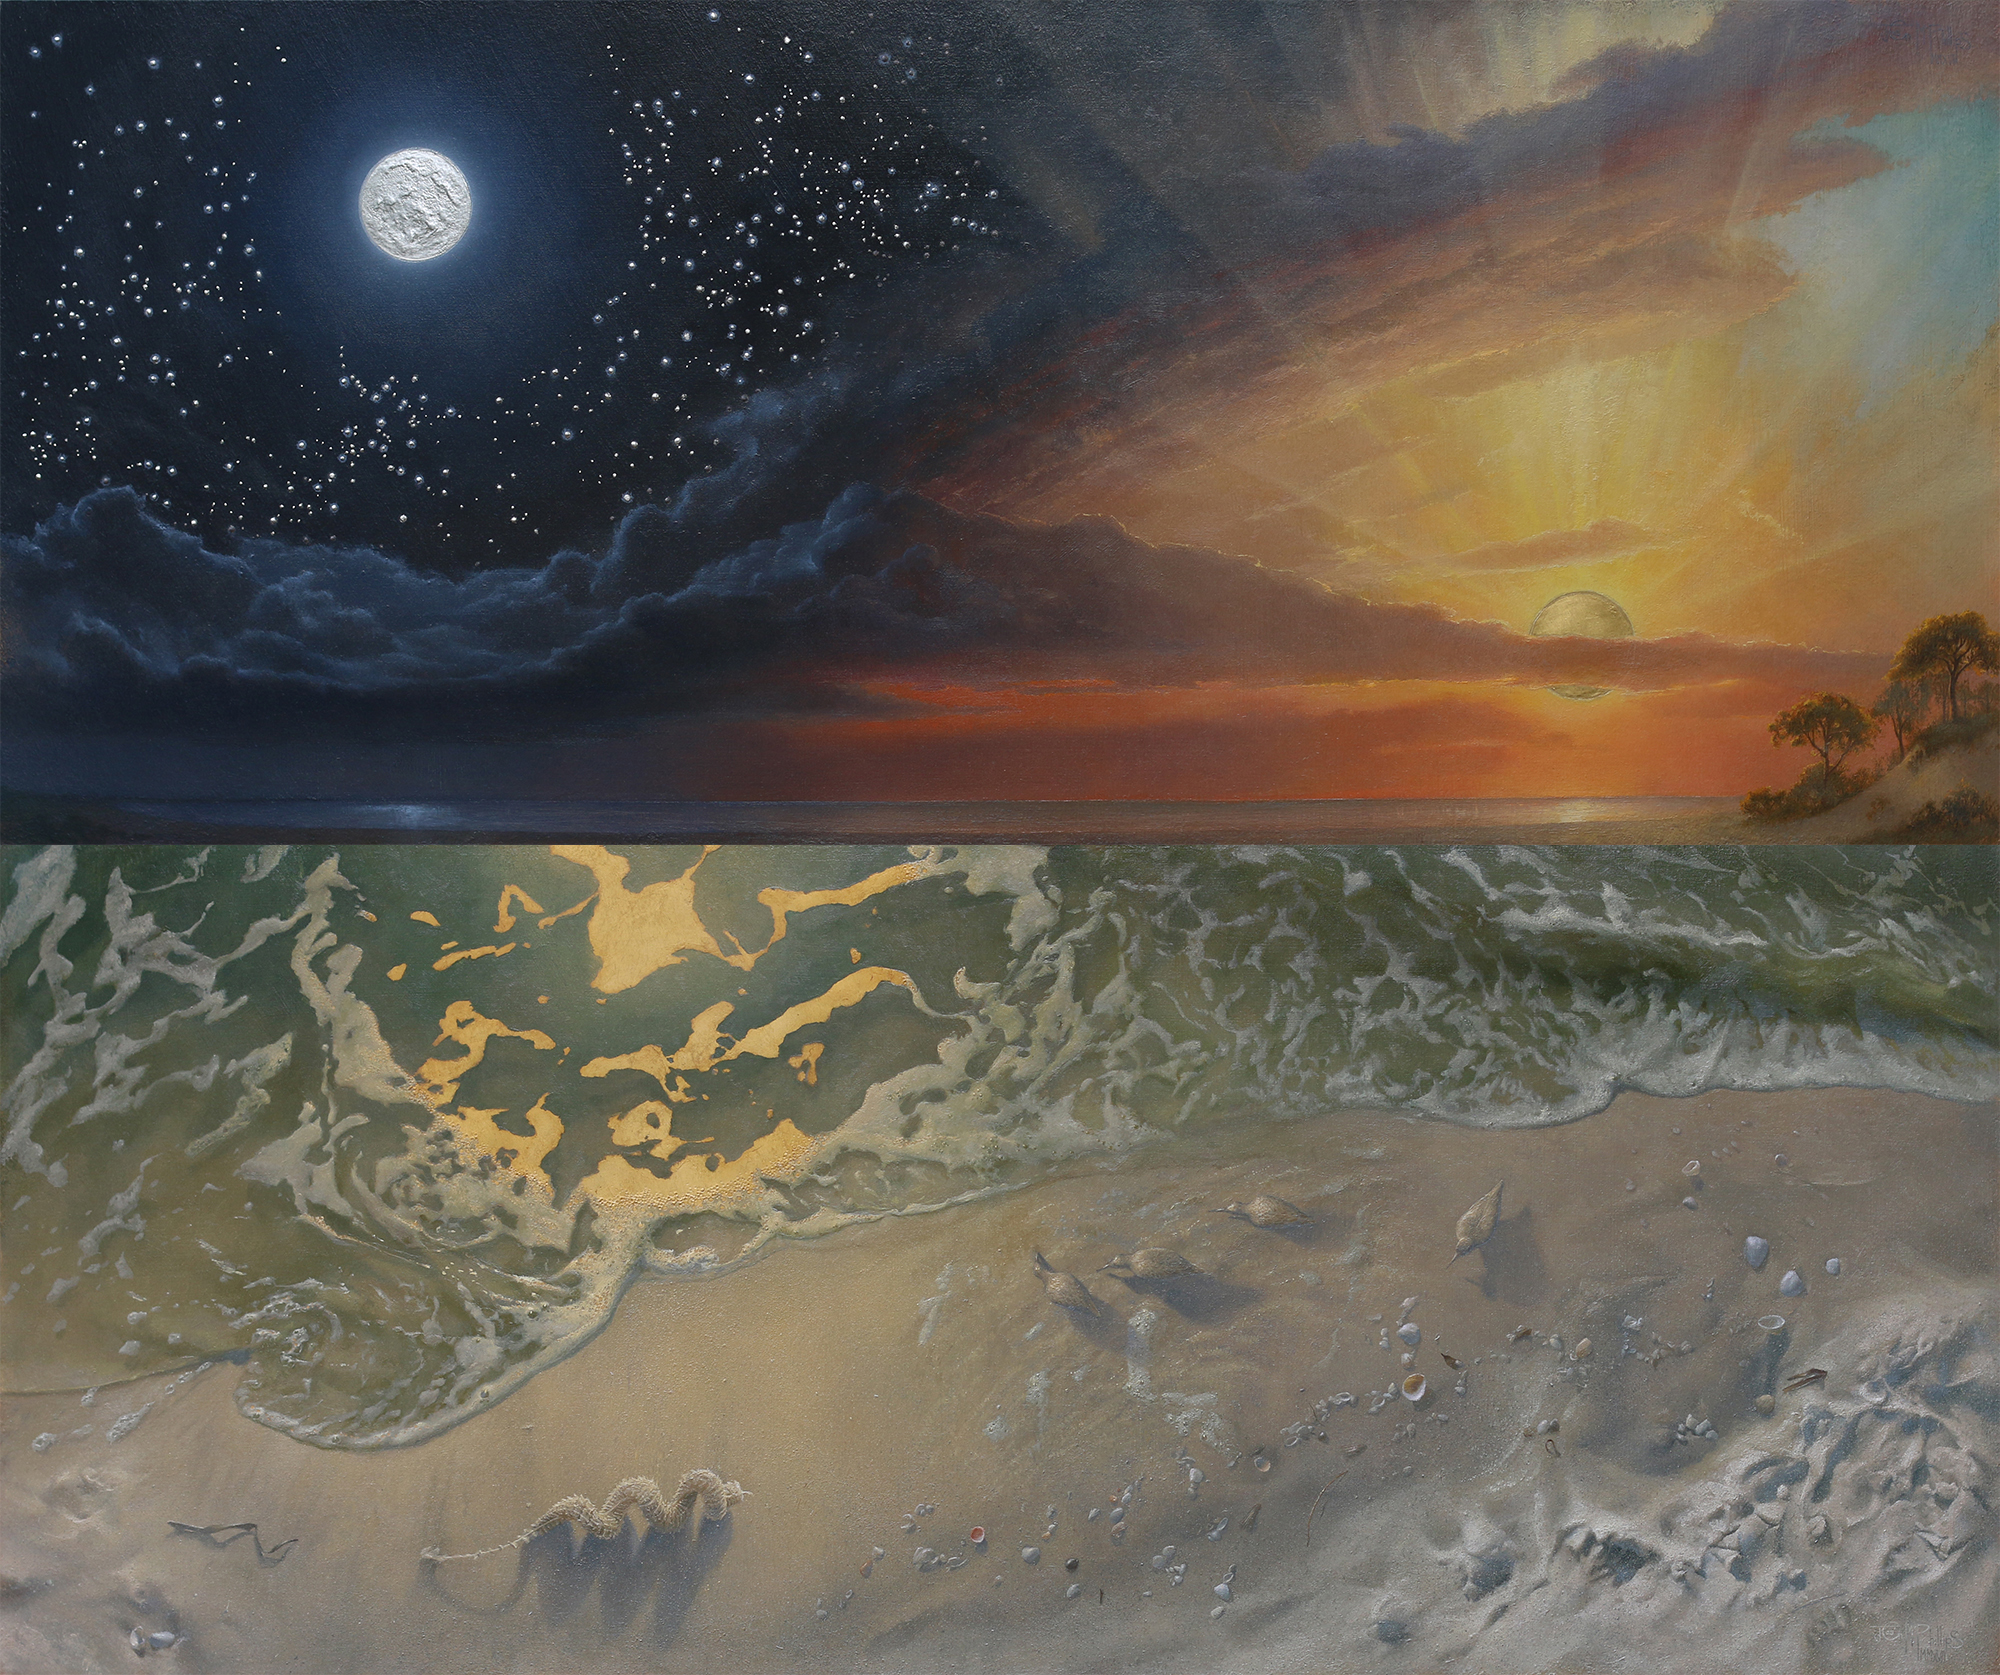 Hieros Gamos  was painted with the companion piece  Ontology. Both now reside in a prestigious private collection.